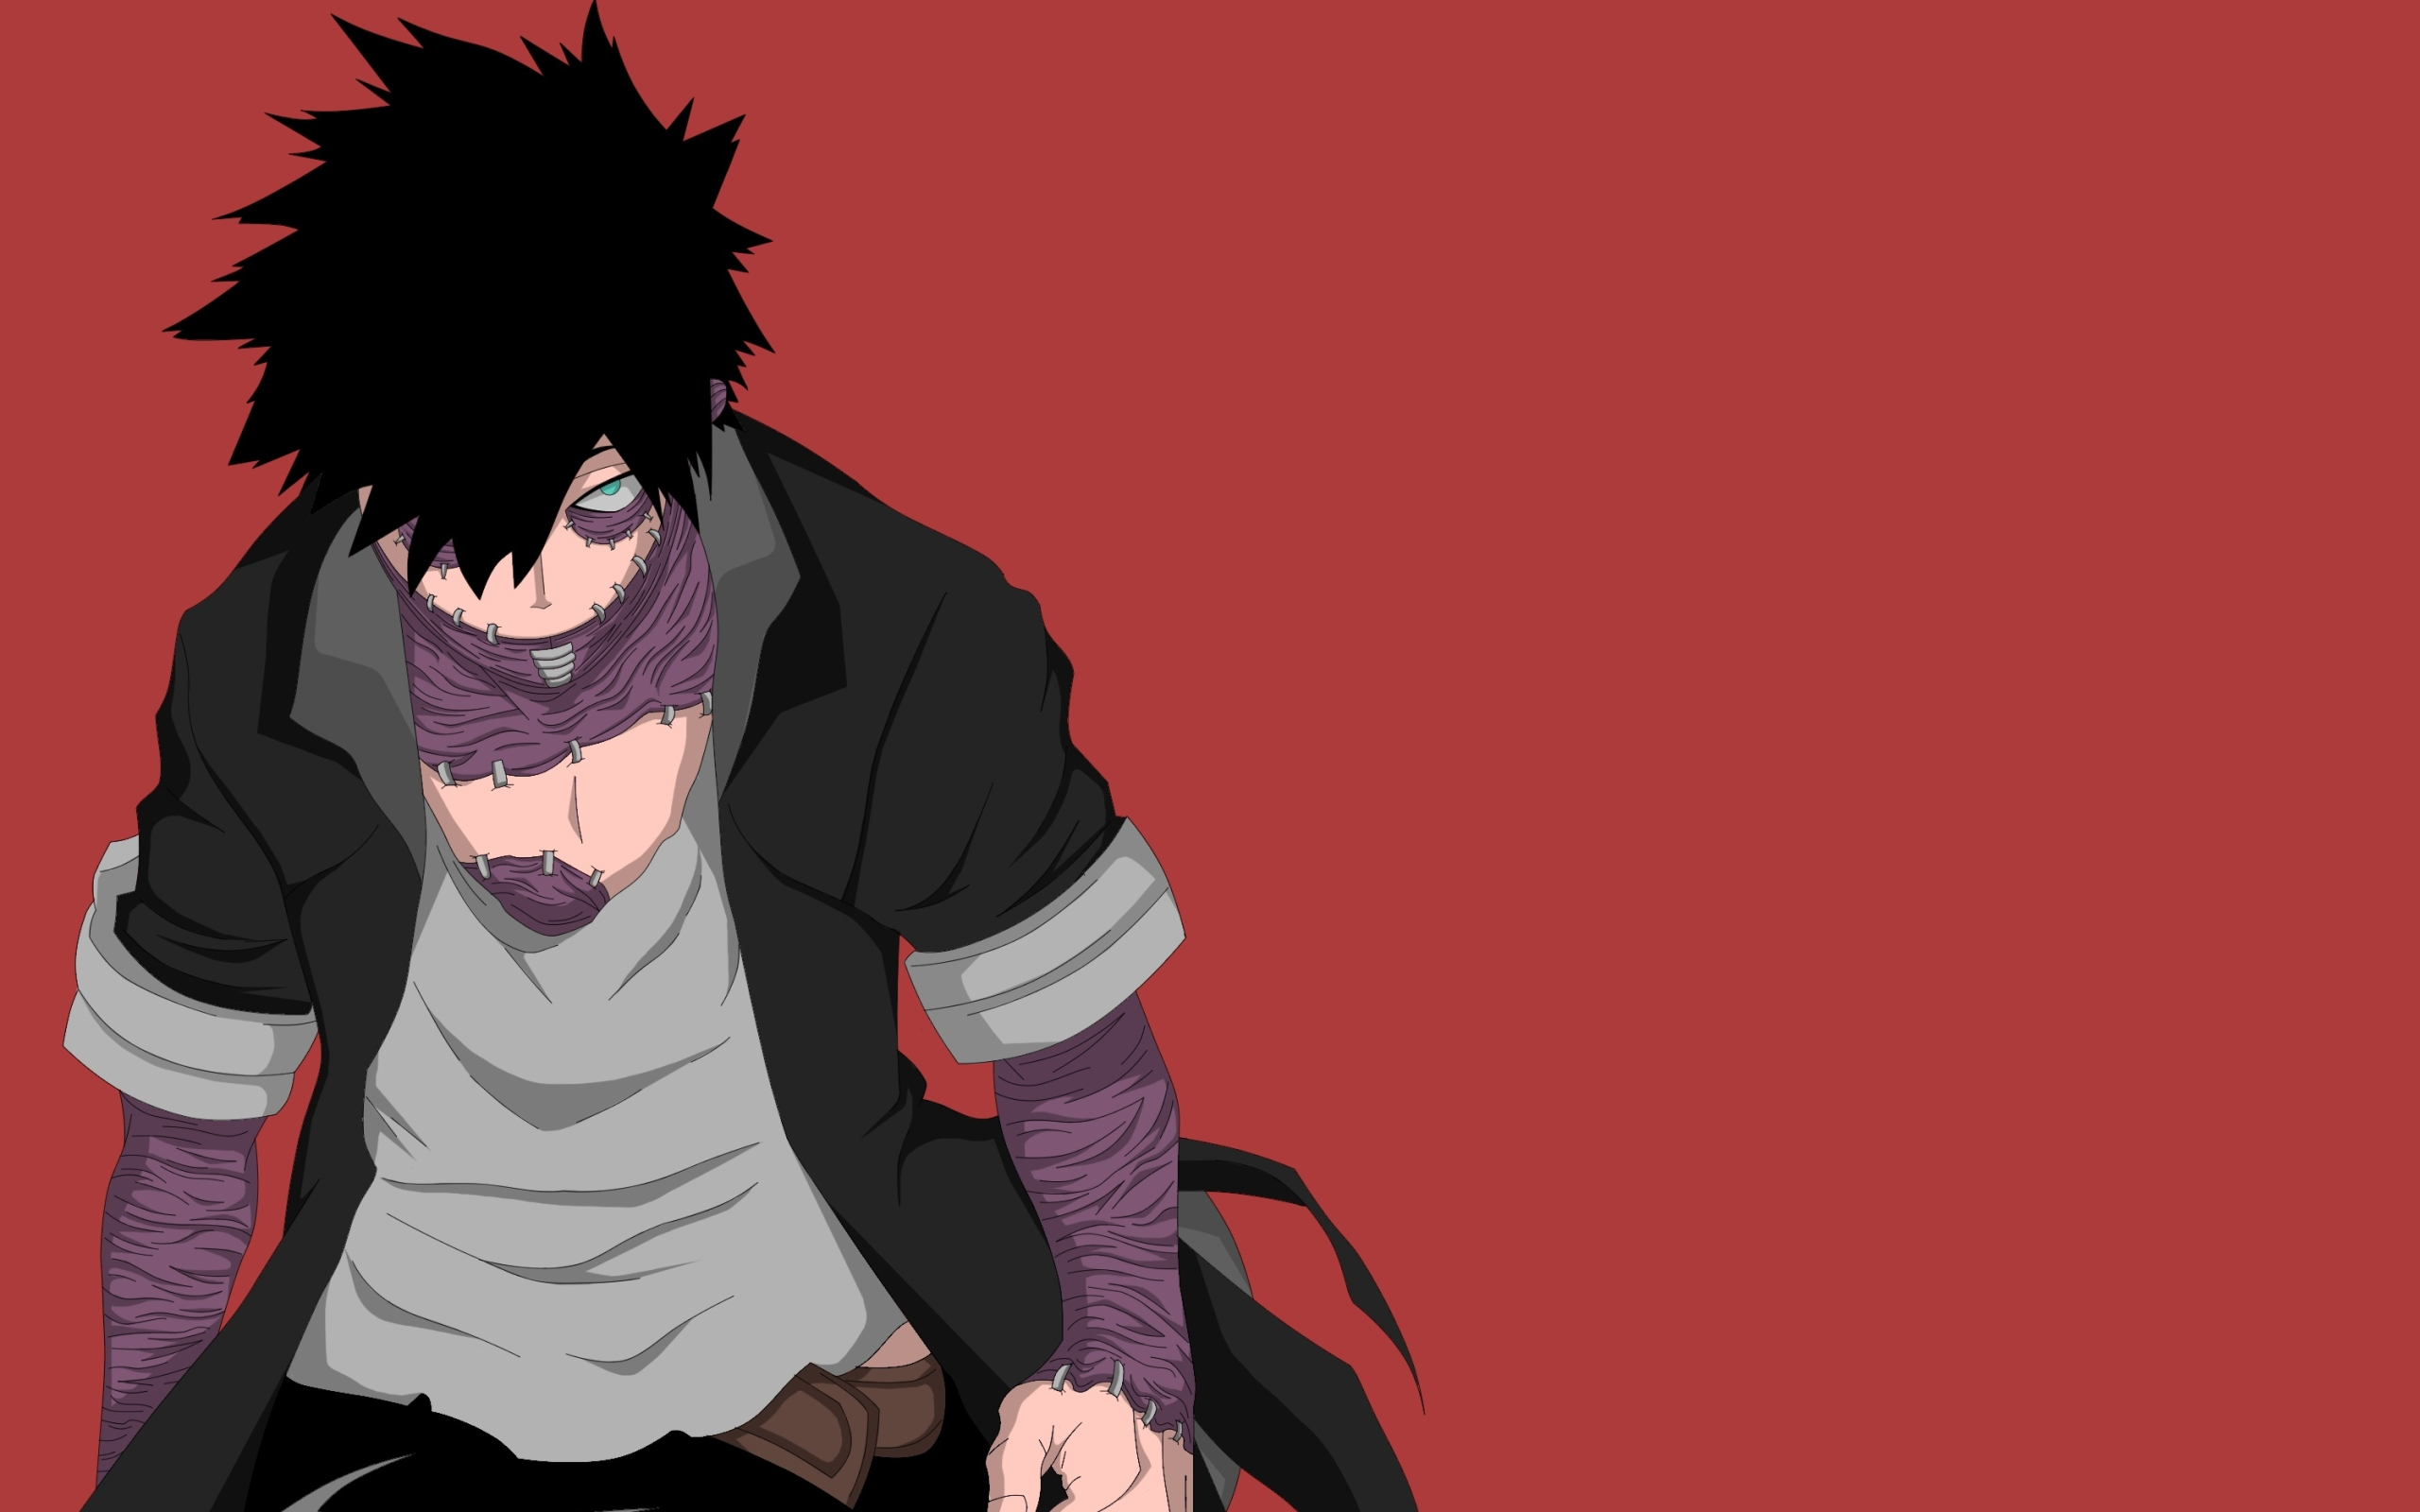 Wallpaper Of Dabi Boku No Hero Academia My Hero Academia